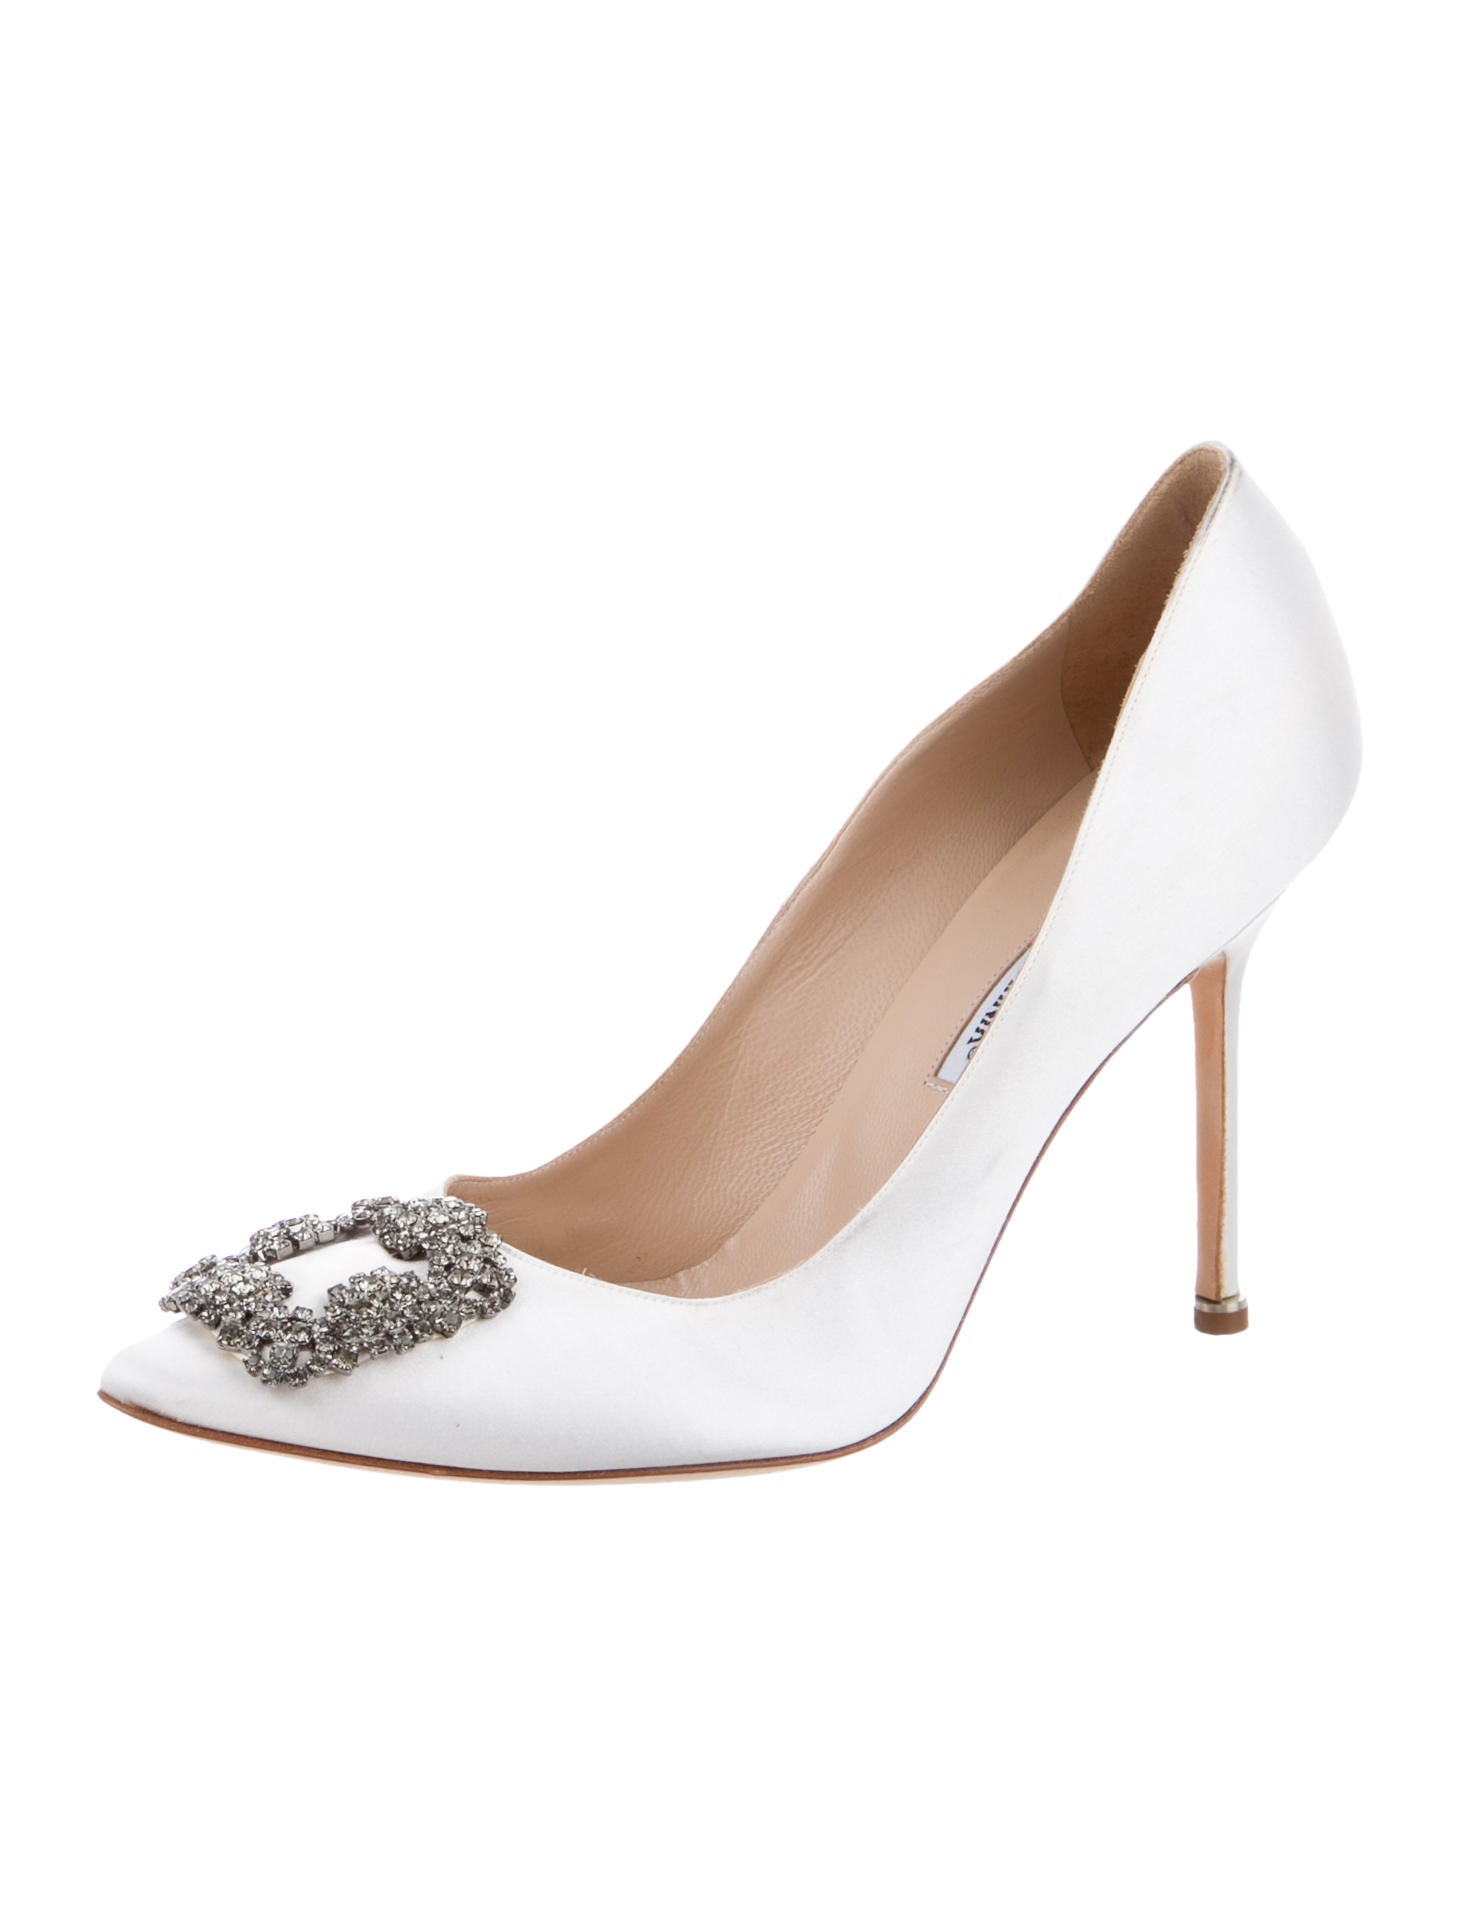 Manolo blahnik satin hangisi pumps shoes moo45110 for Shoes by manolo blahnik